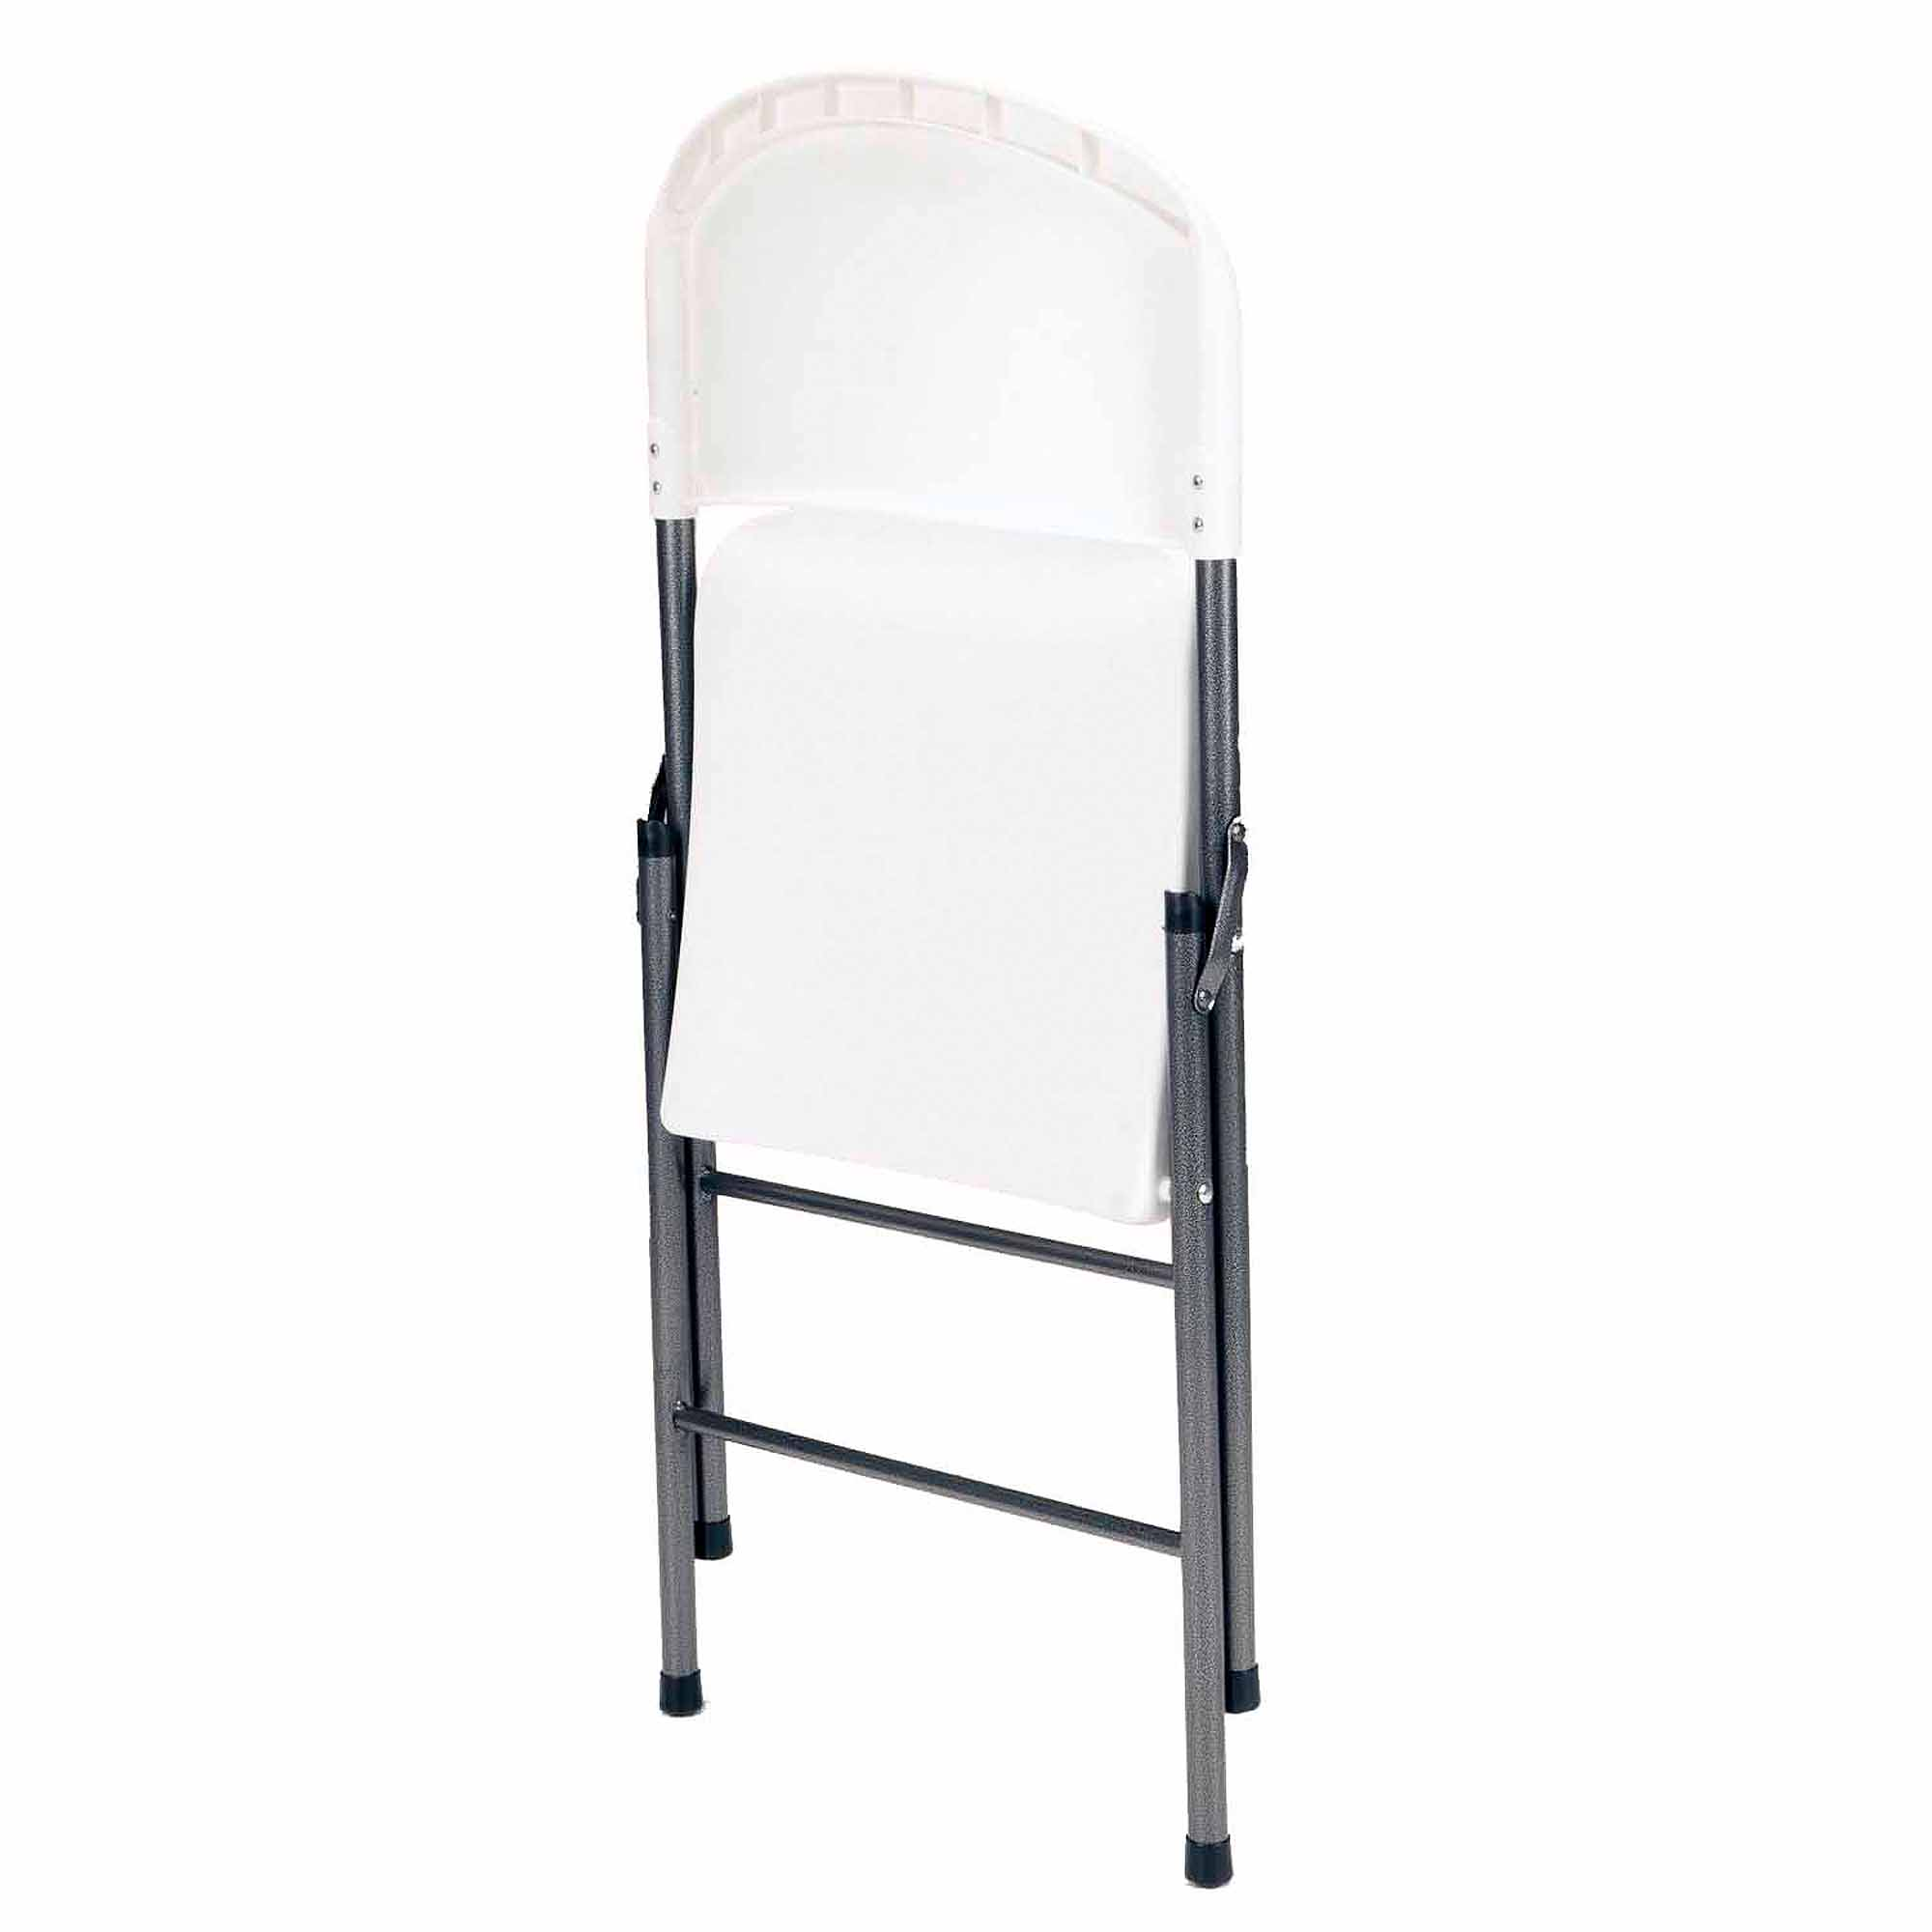 Mainstays Premium Resin Chair, Set of 4, White Speckle